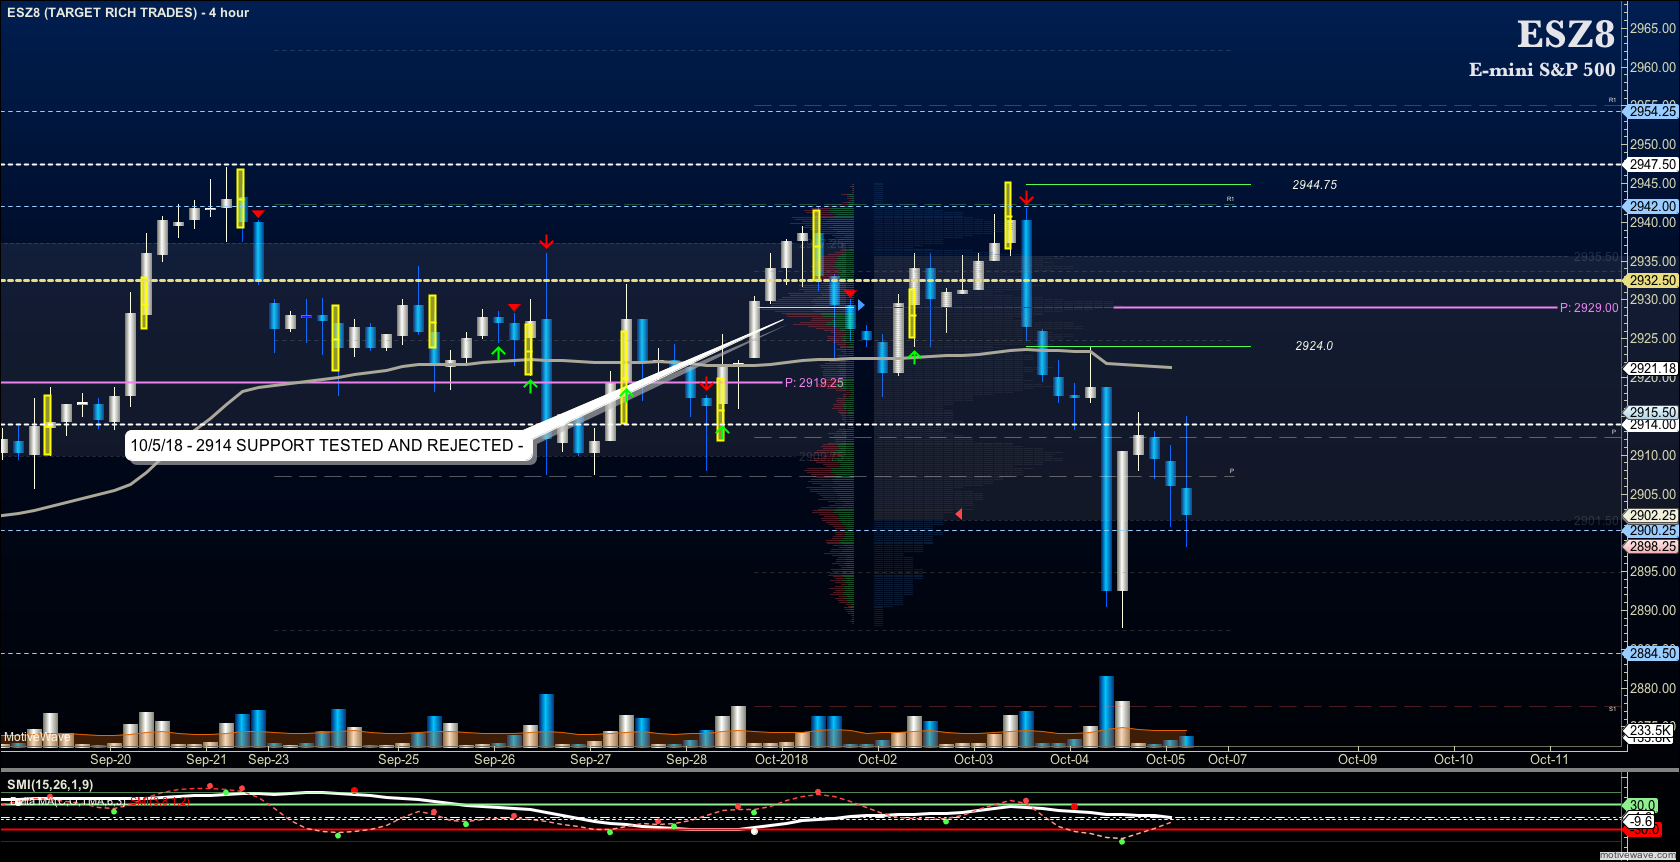 s&p 500 futures trading analysis october 5 price targets chart